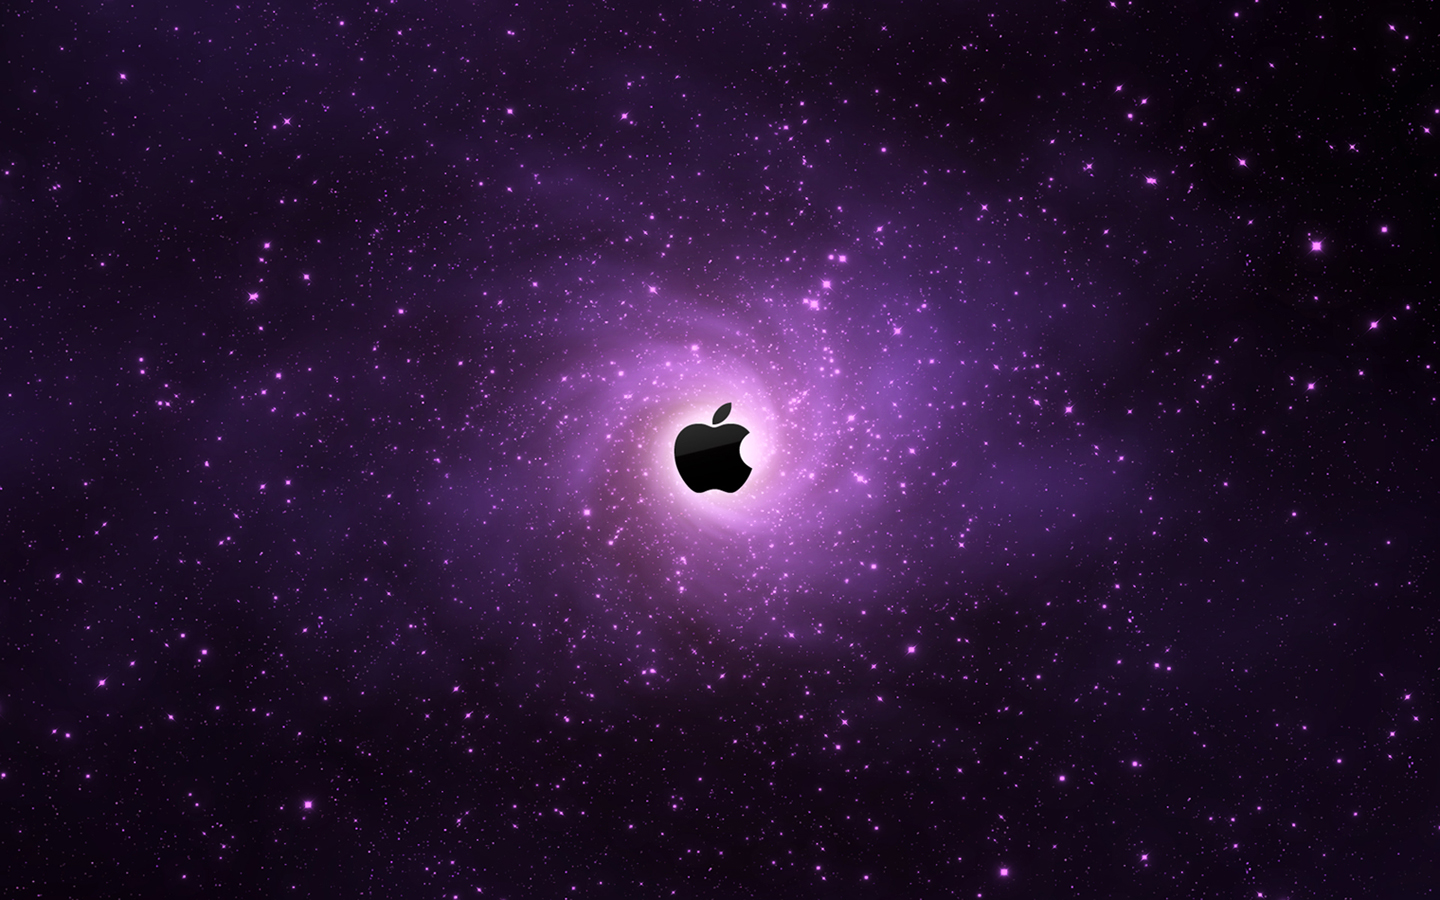 Mac Wallpaper Set 32 \u00ab Awesome Wallpapers